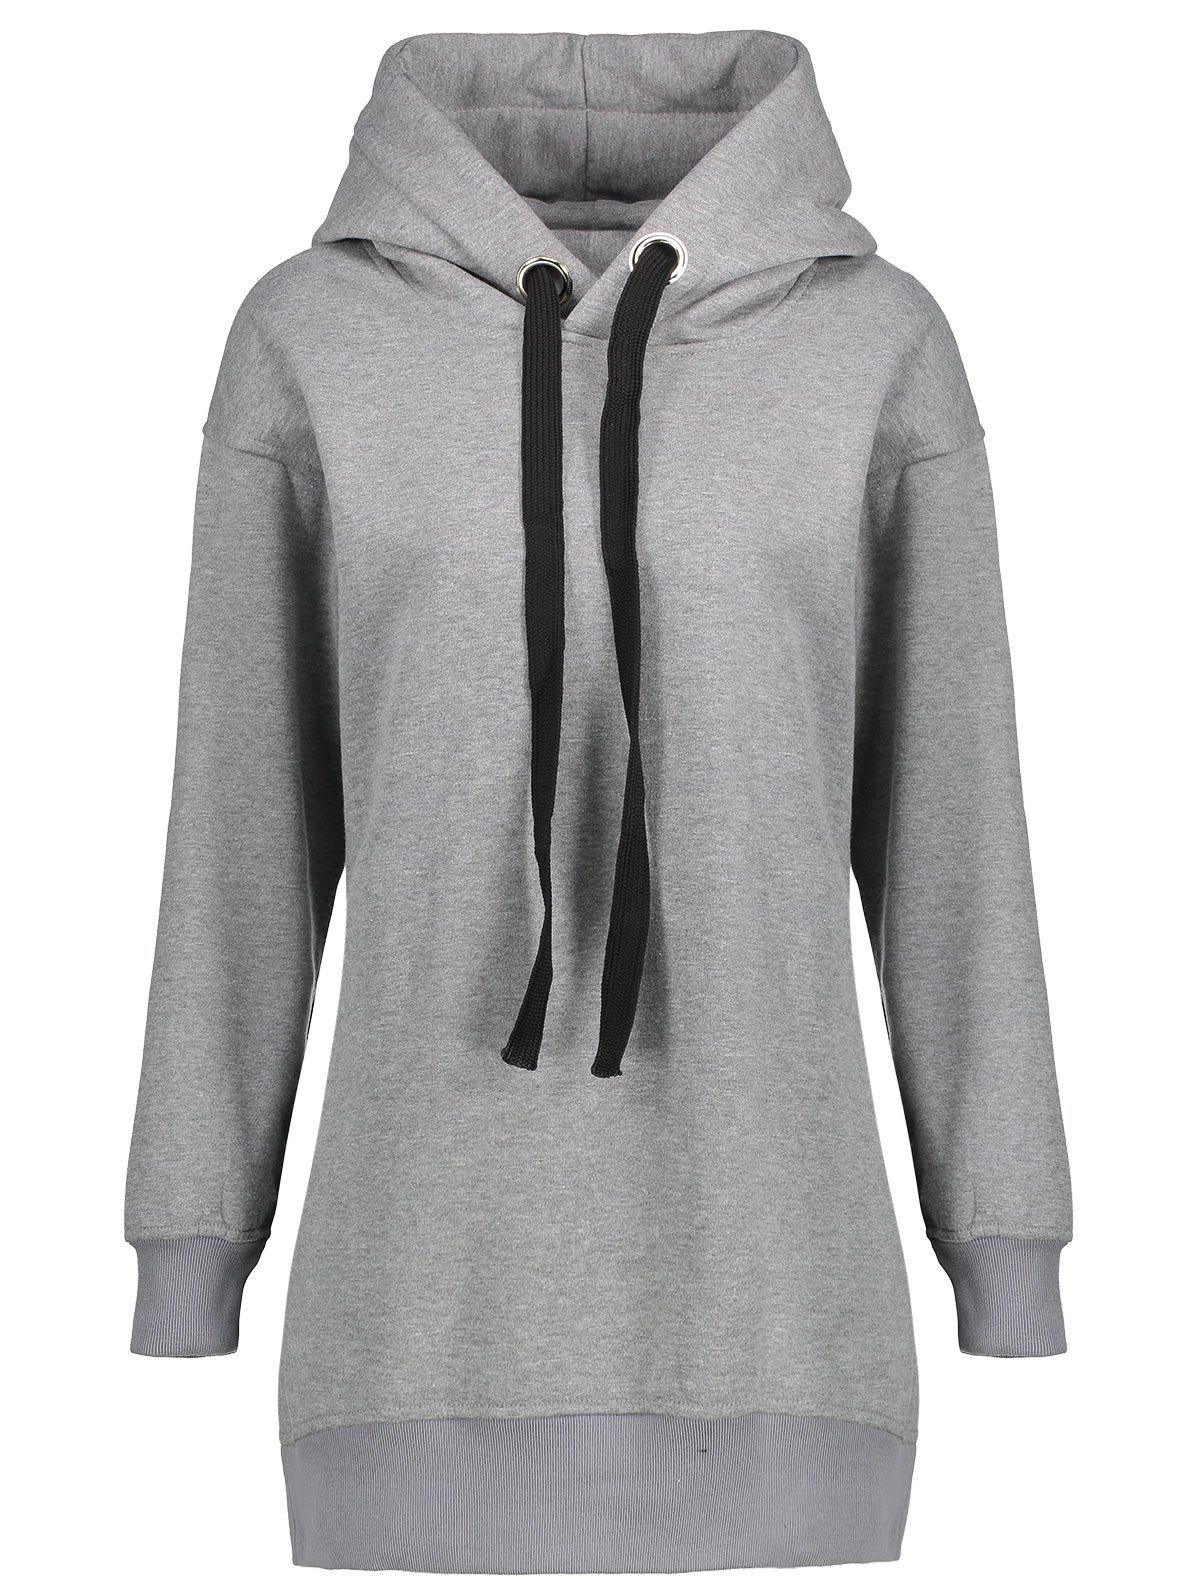 Discount Fleece Lined Zipper Slit Plus Size Hoodie